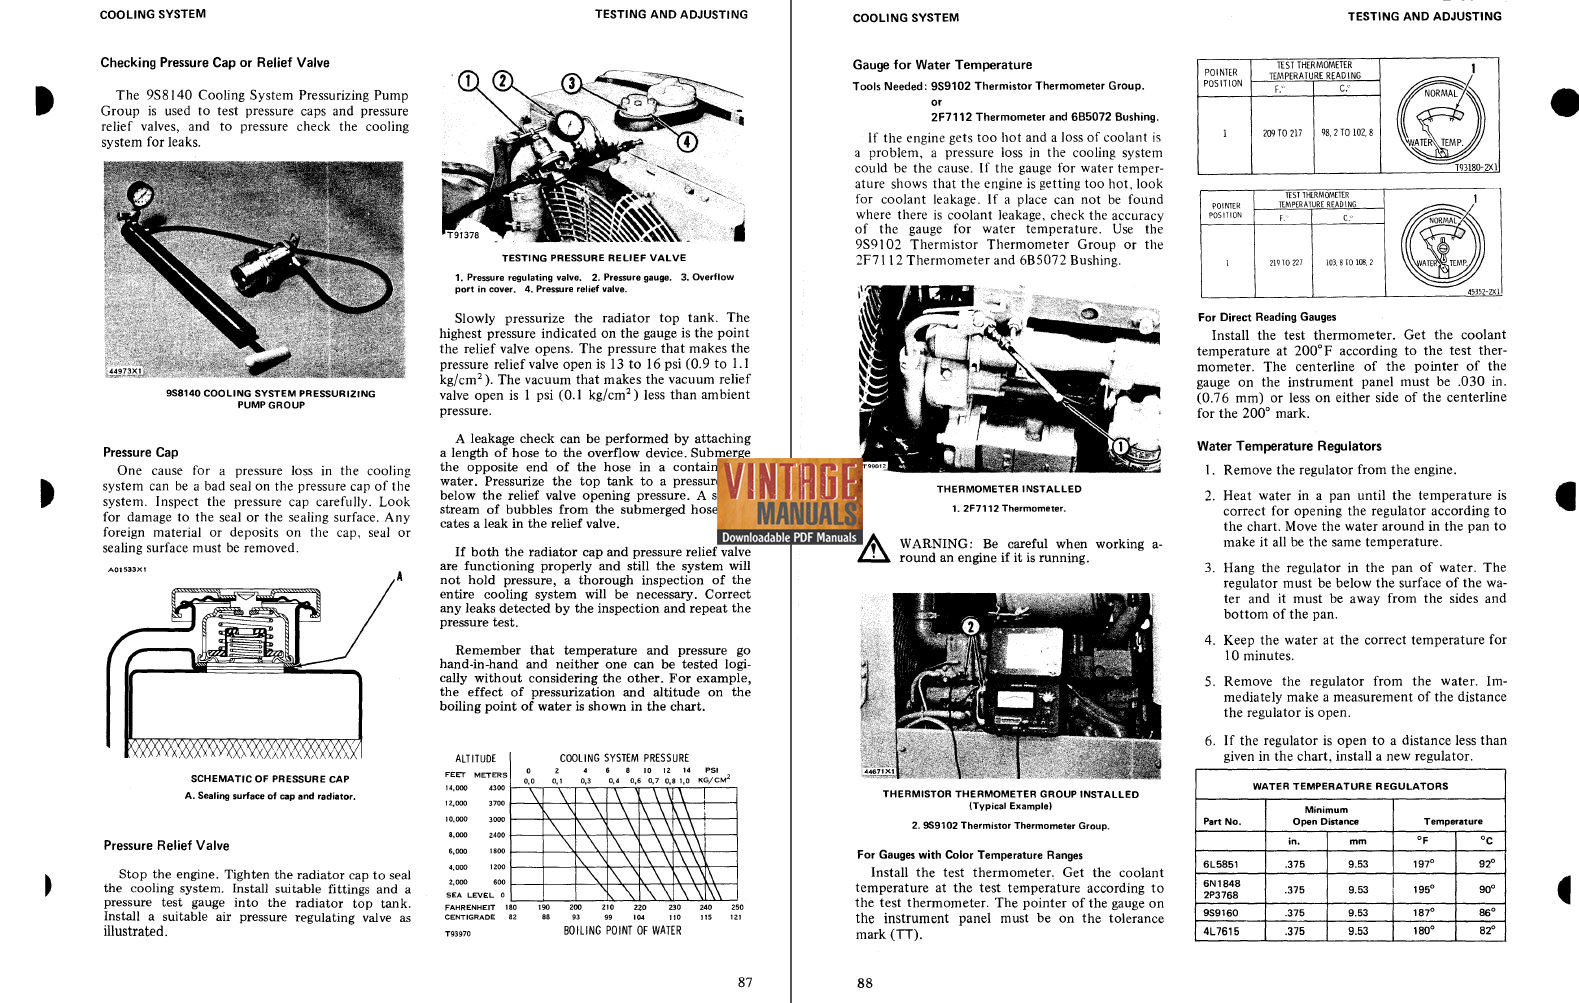 Caterpillar 35 Injection Pump Manual